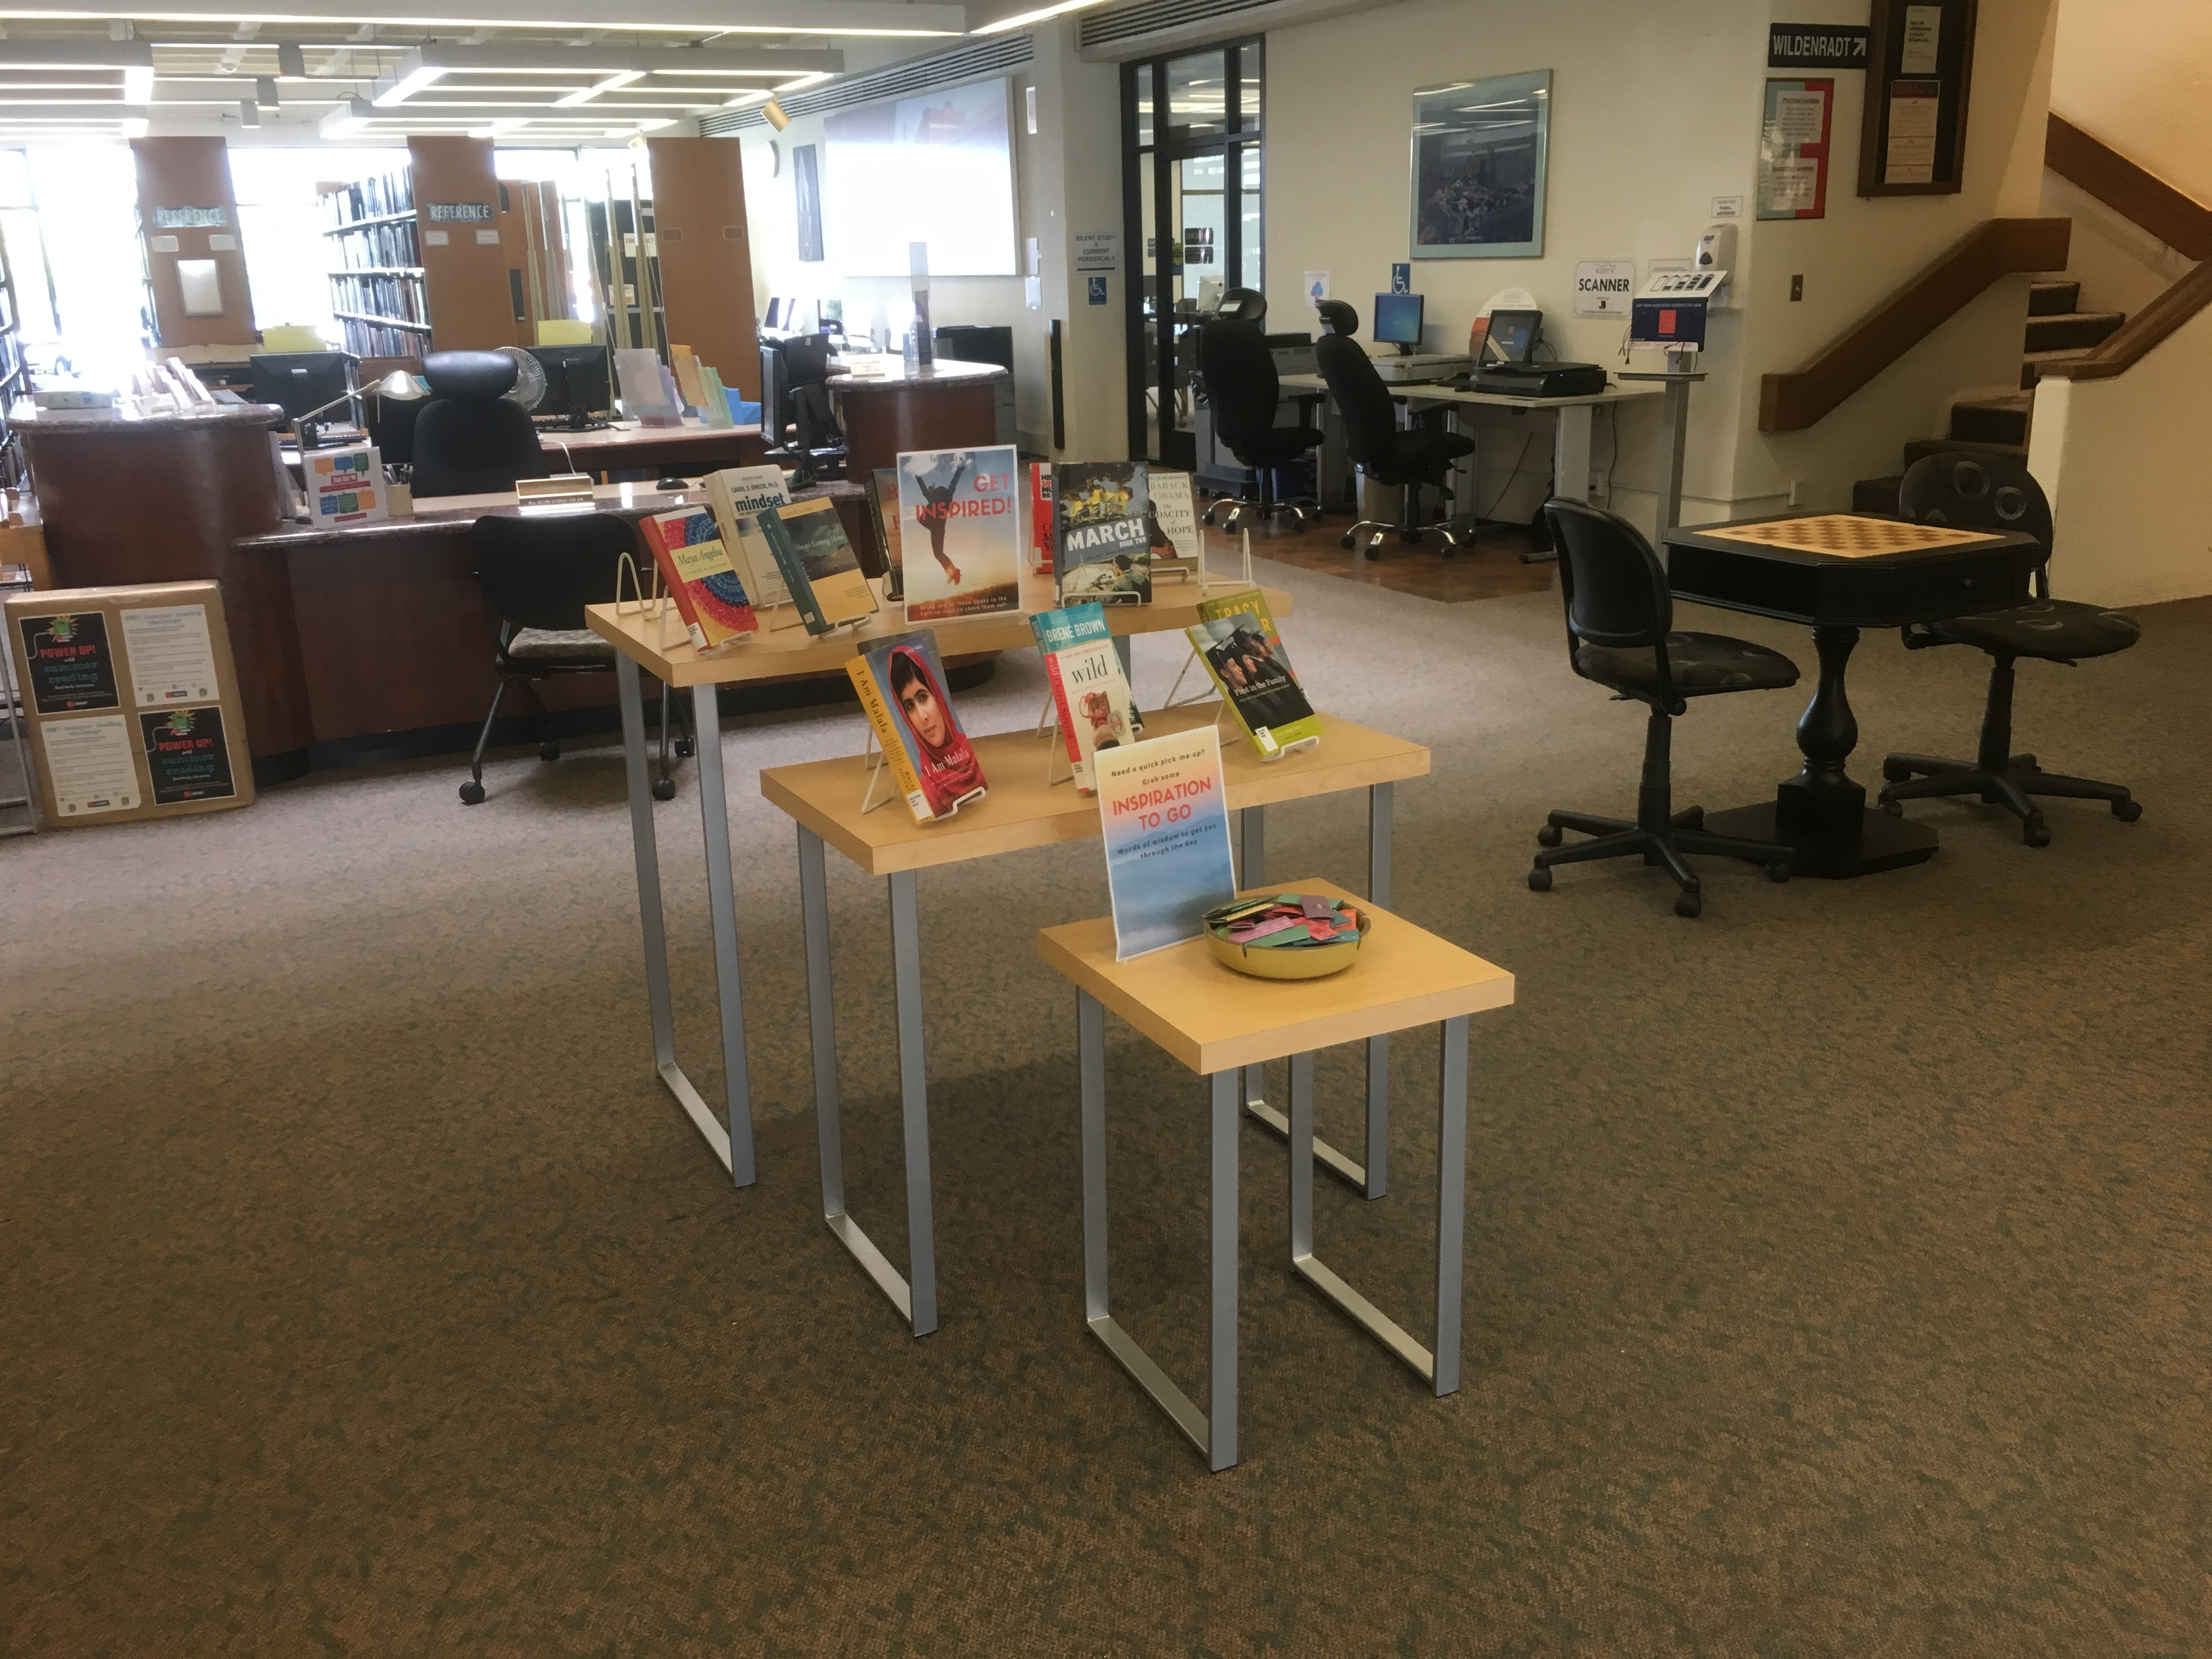 Library display tables